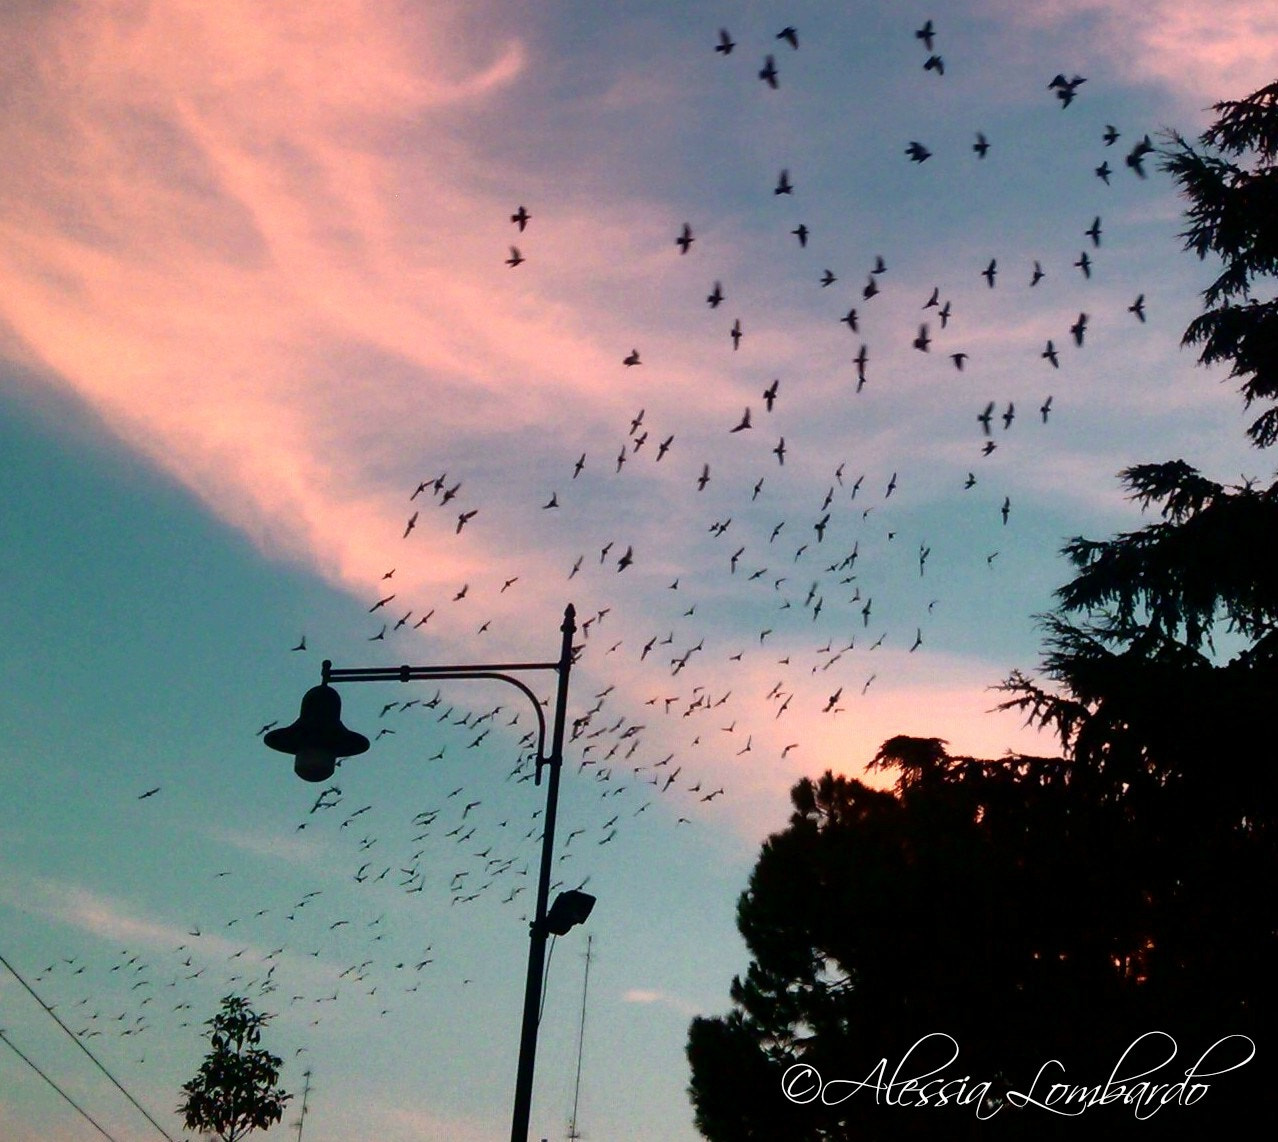 Photograph 'FLY'. by Alessia Lombardo on 500px